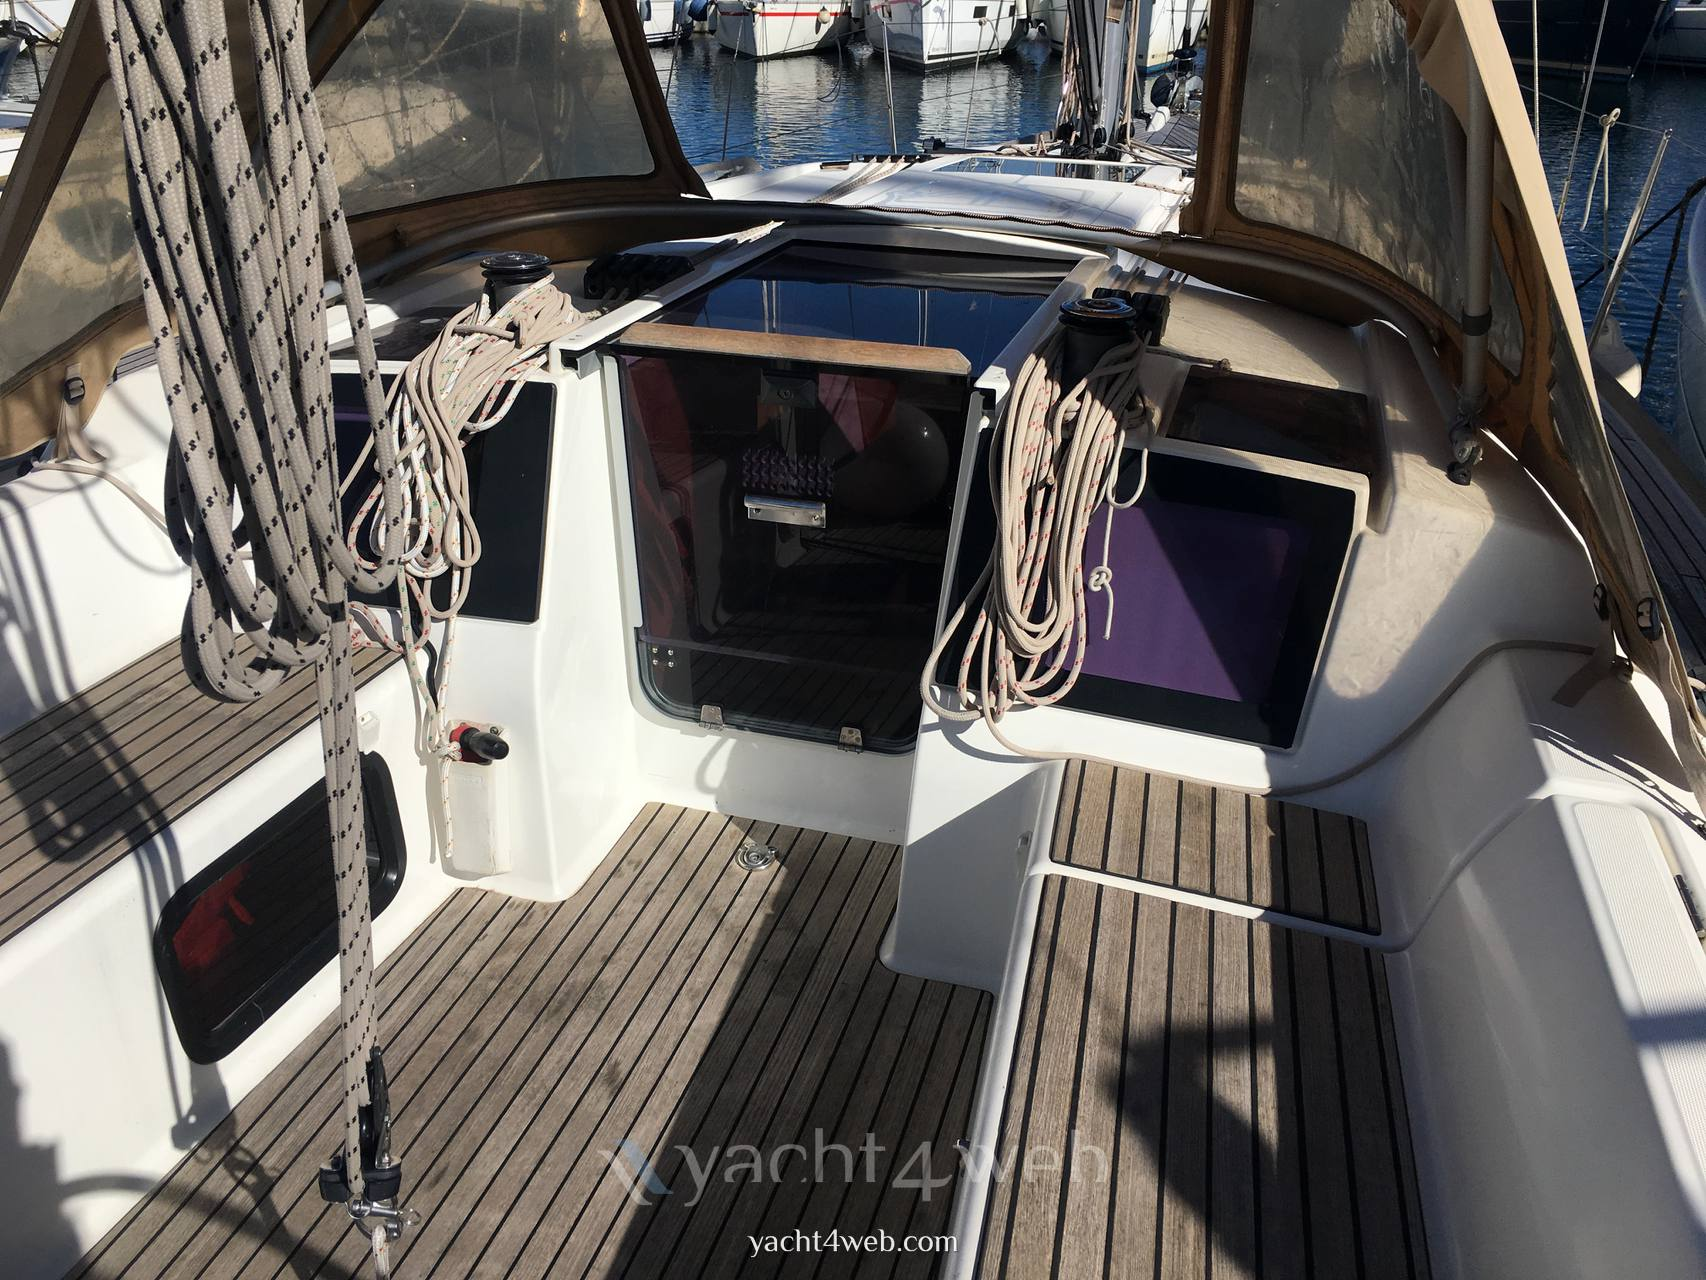 Dufour Yachts 310 grand large Sailing boat used for sale